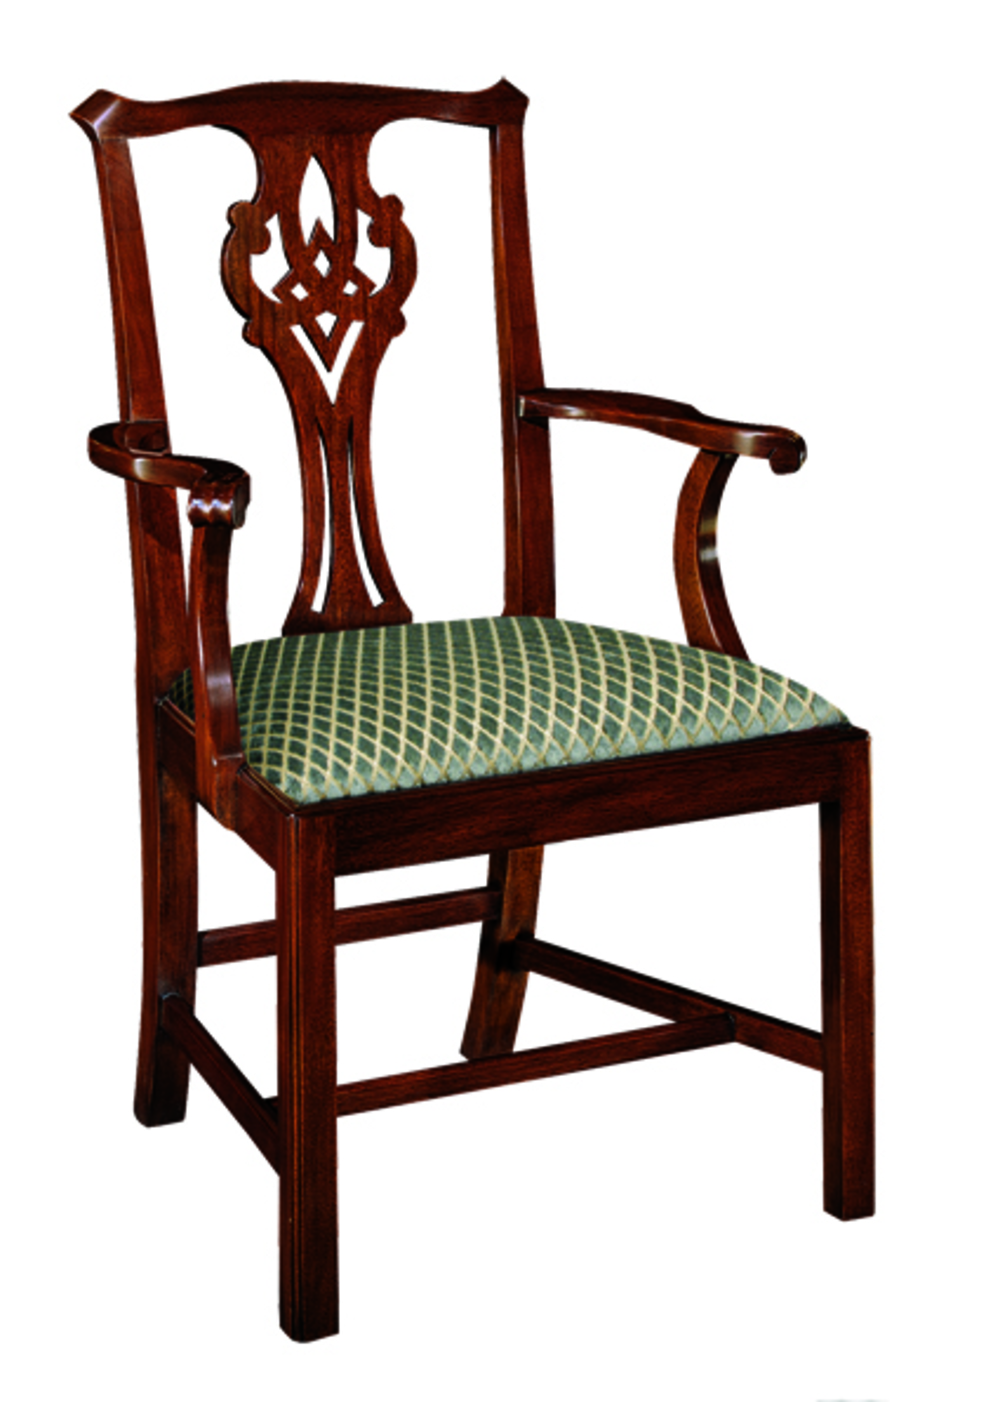 HENKEL-HARRIS, INC - Chippendale Arm Chair